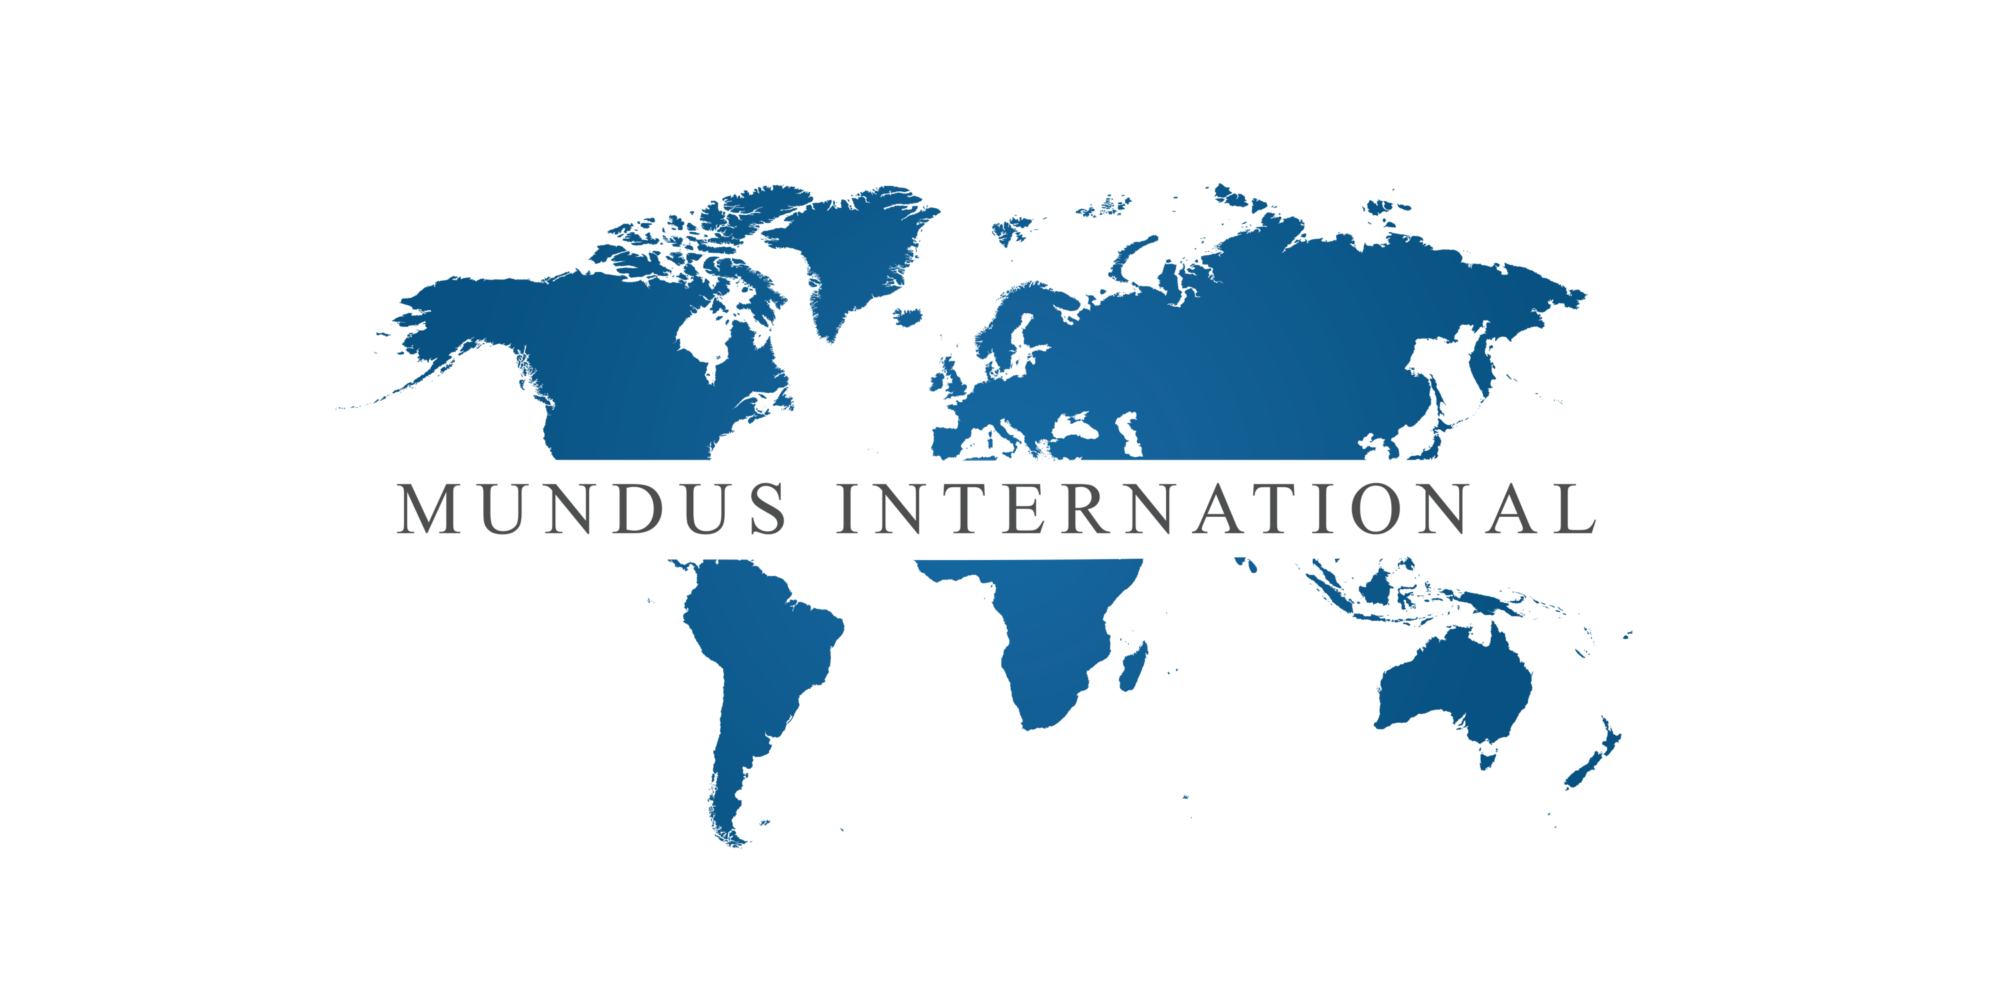 Mundus International